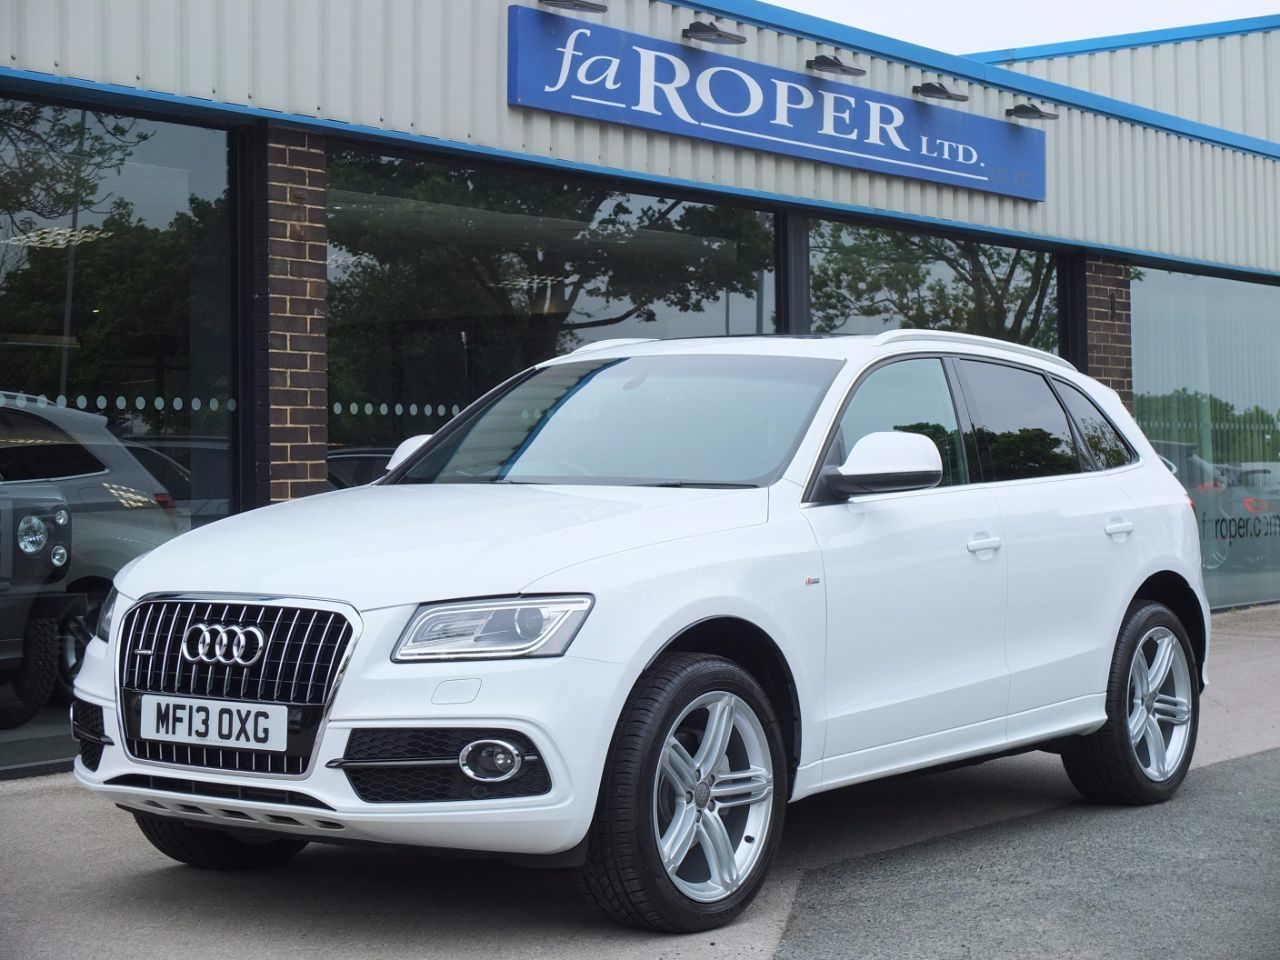 Audi Q5 2.0 TDI quattro S Line Plus S Tronic 177ps Estate Diesel Ibis WhiteAudi Q5 2.0 TDI quattro S Line Plus S Tronic 177ps Estate Diesel Ibis White at fa Roper Ltd Bradford